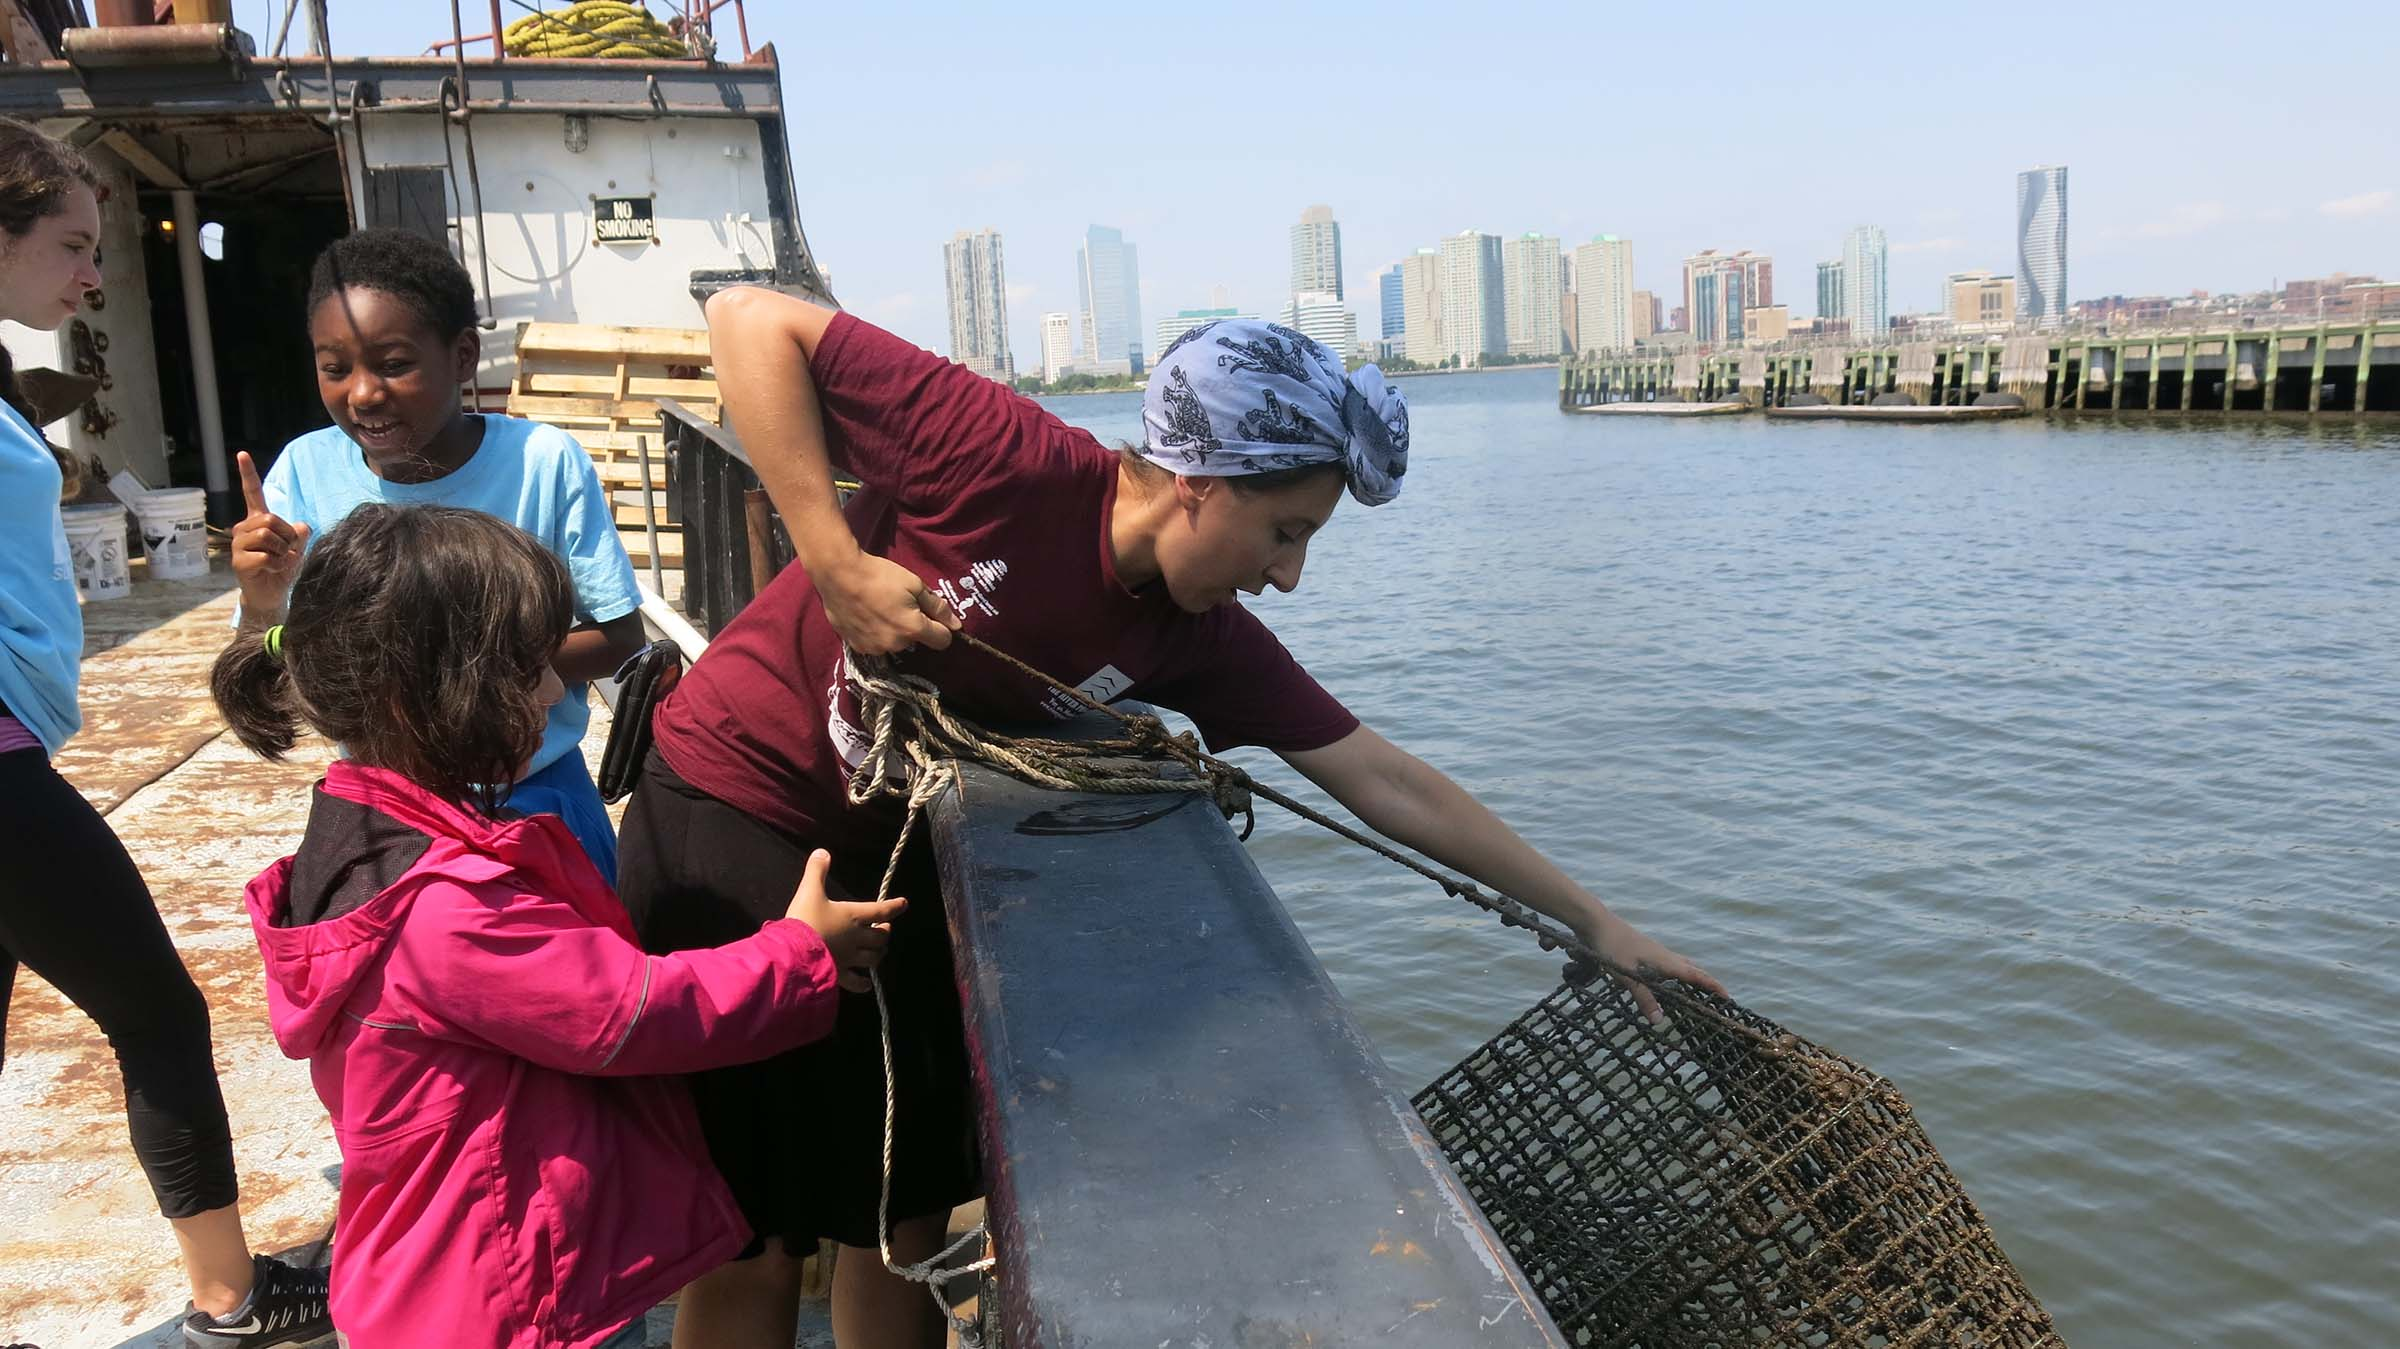 A park educator reaches and pulls in one of the oyster traps